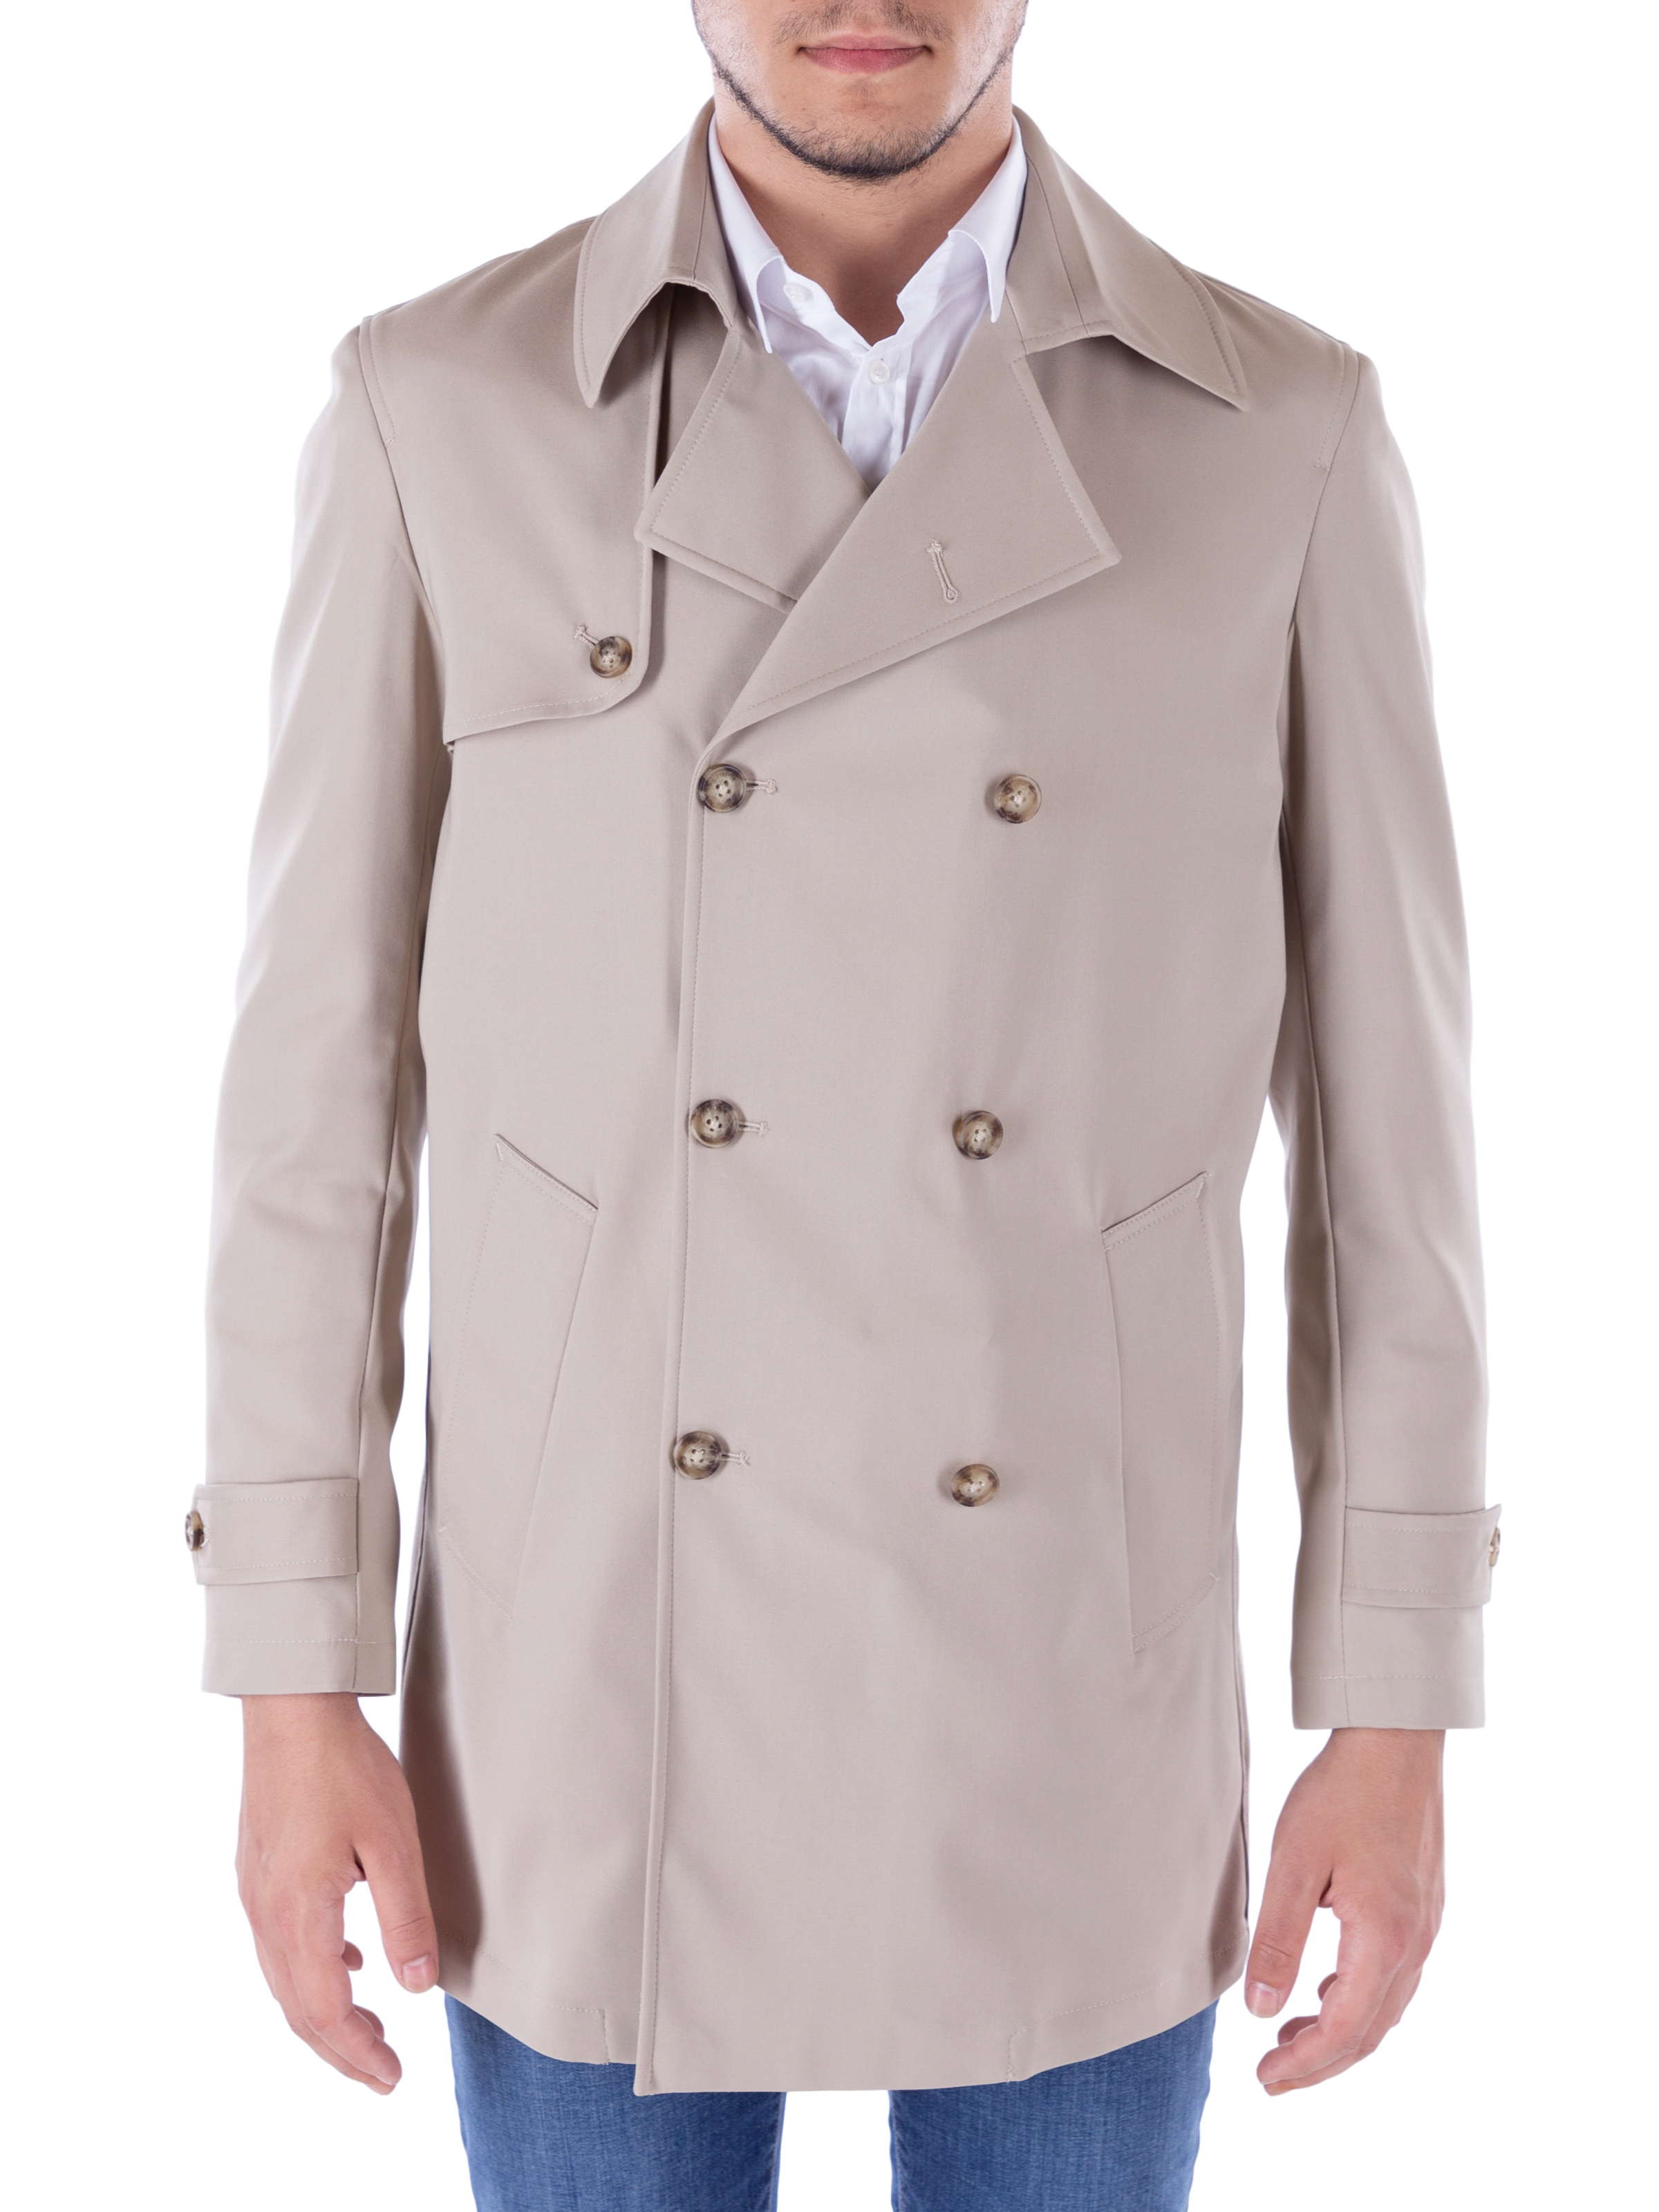 Paul Miranda Trench GB 788